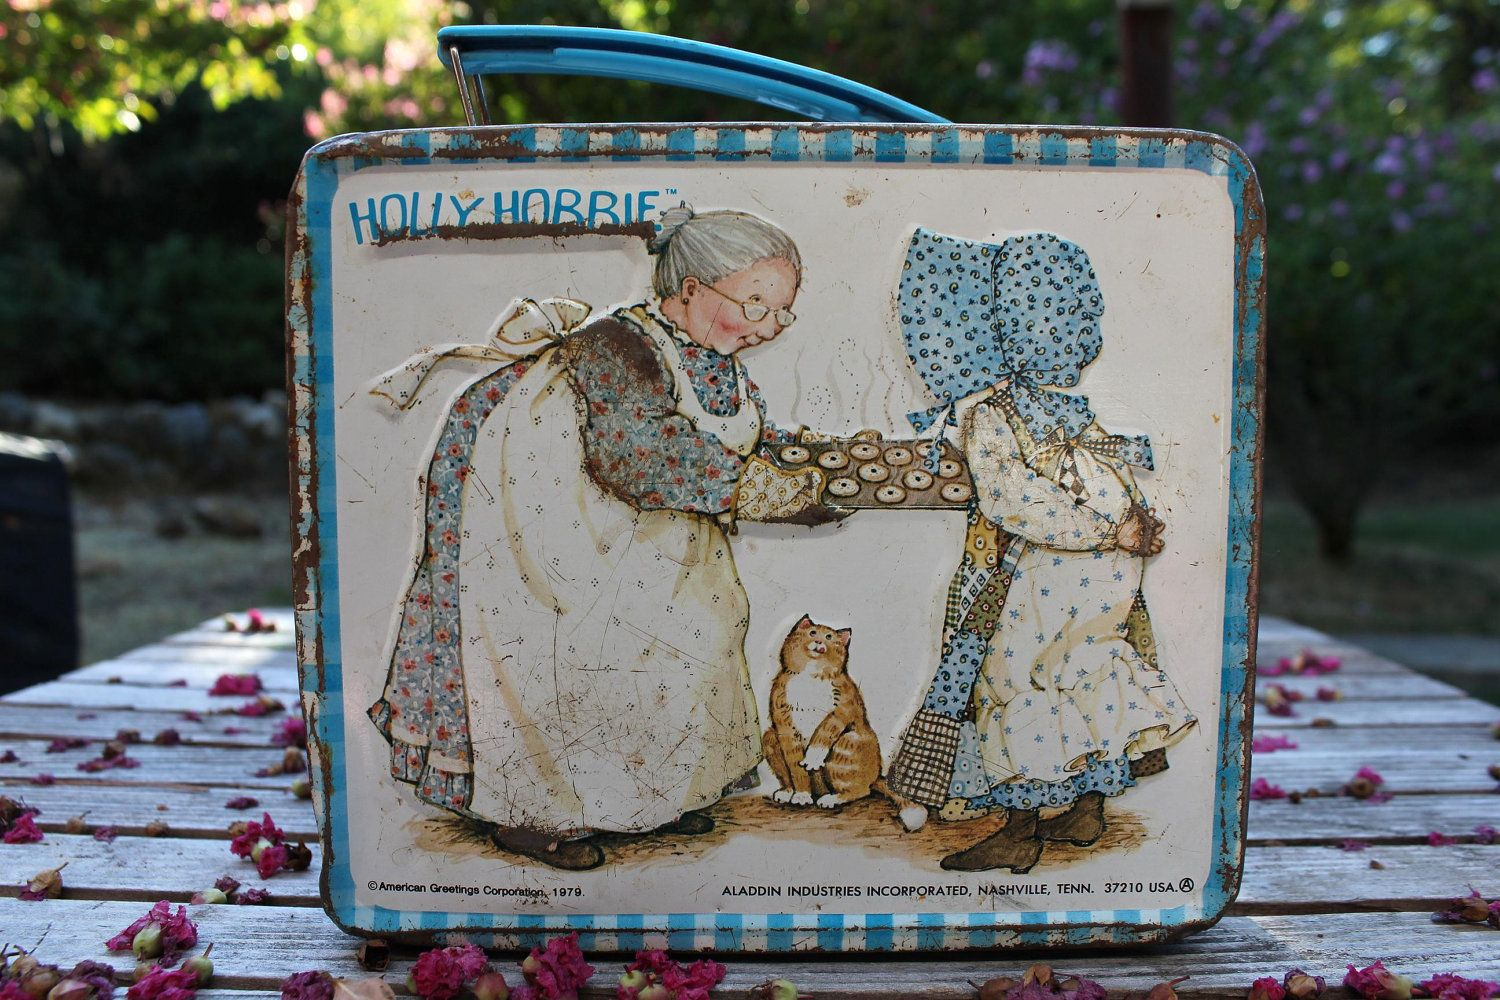 Holly Hobbie Lunchbox 1979 by Aladdin by CatHouseVintage on Etsy